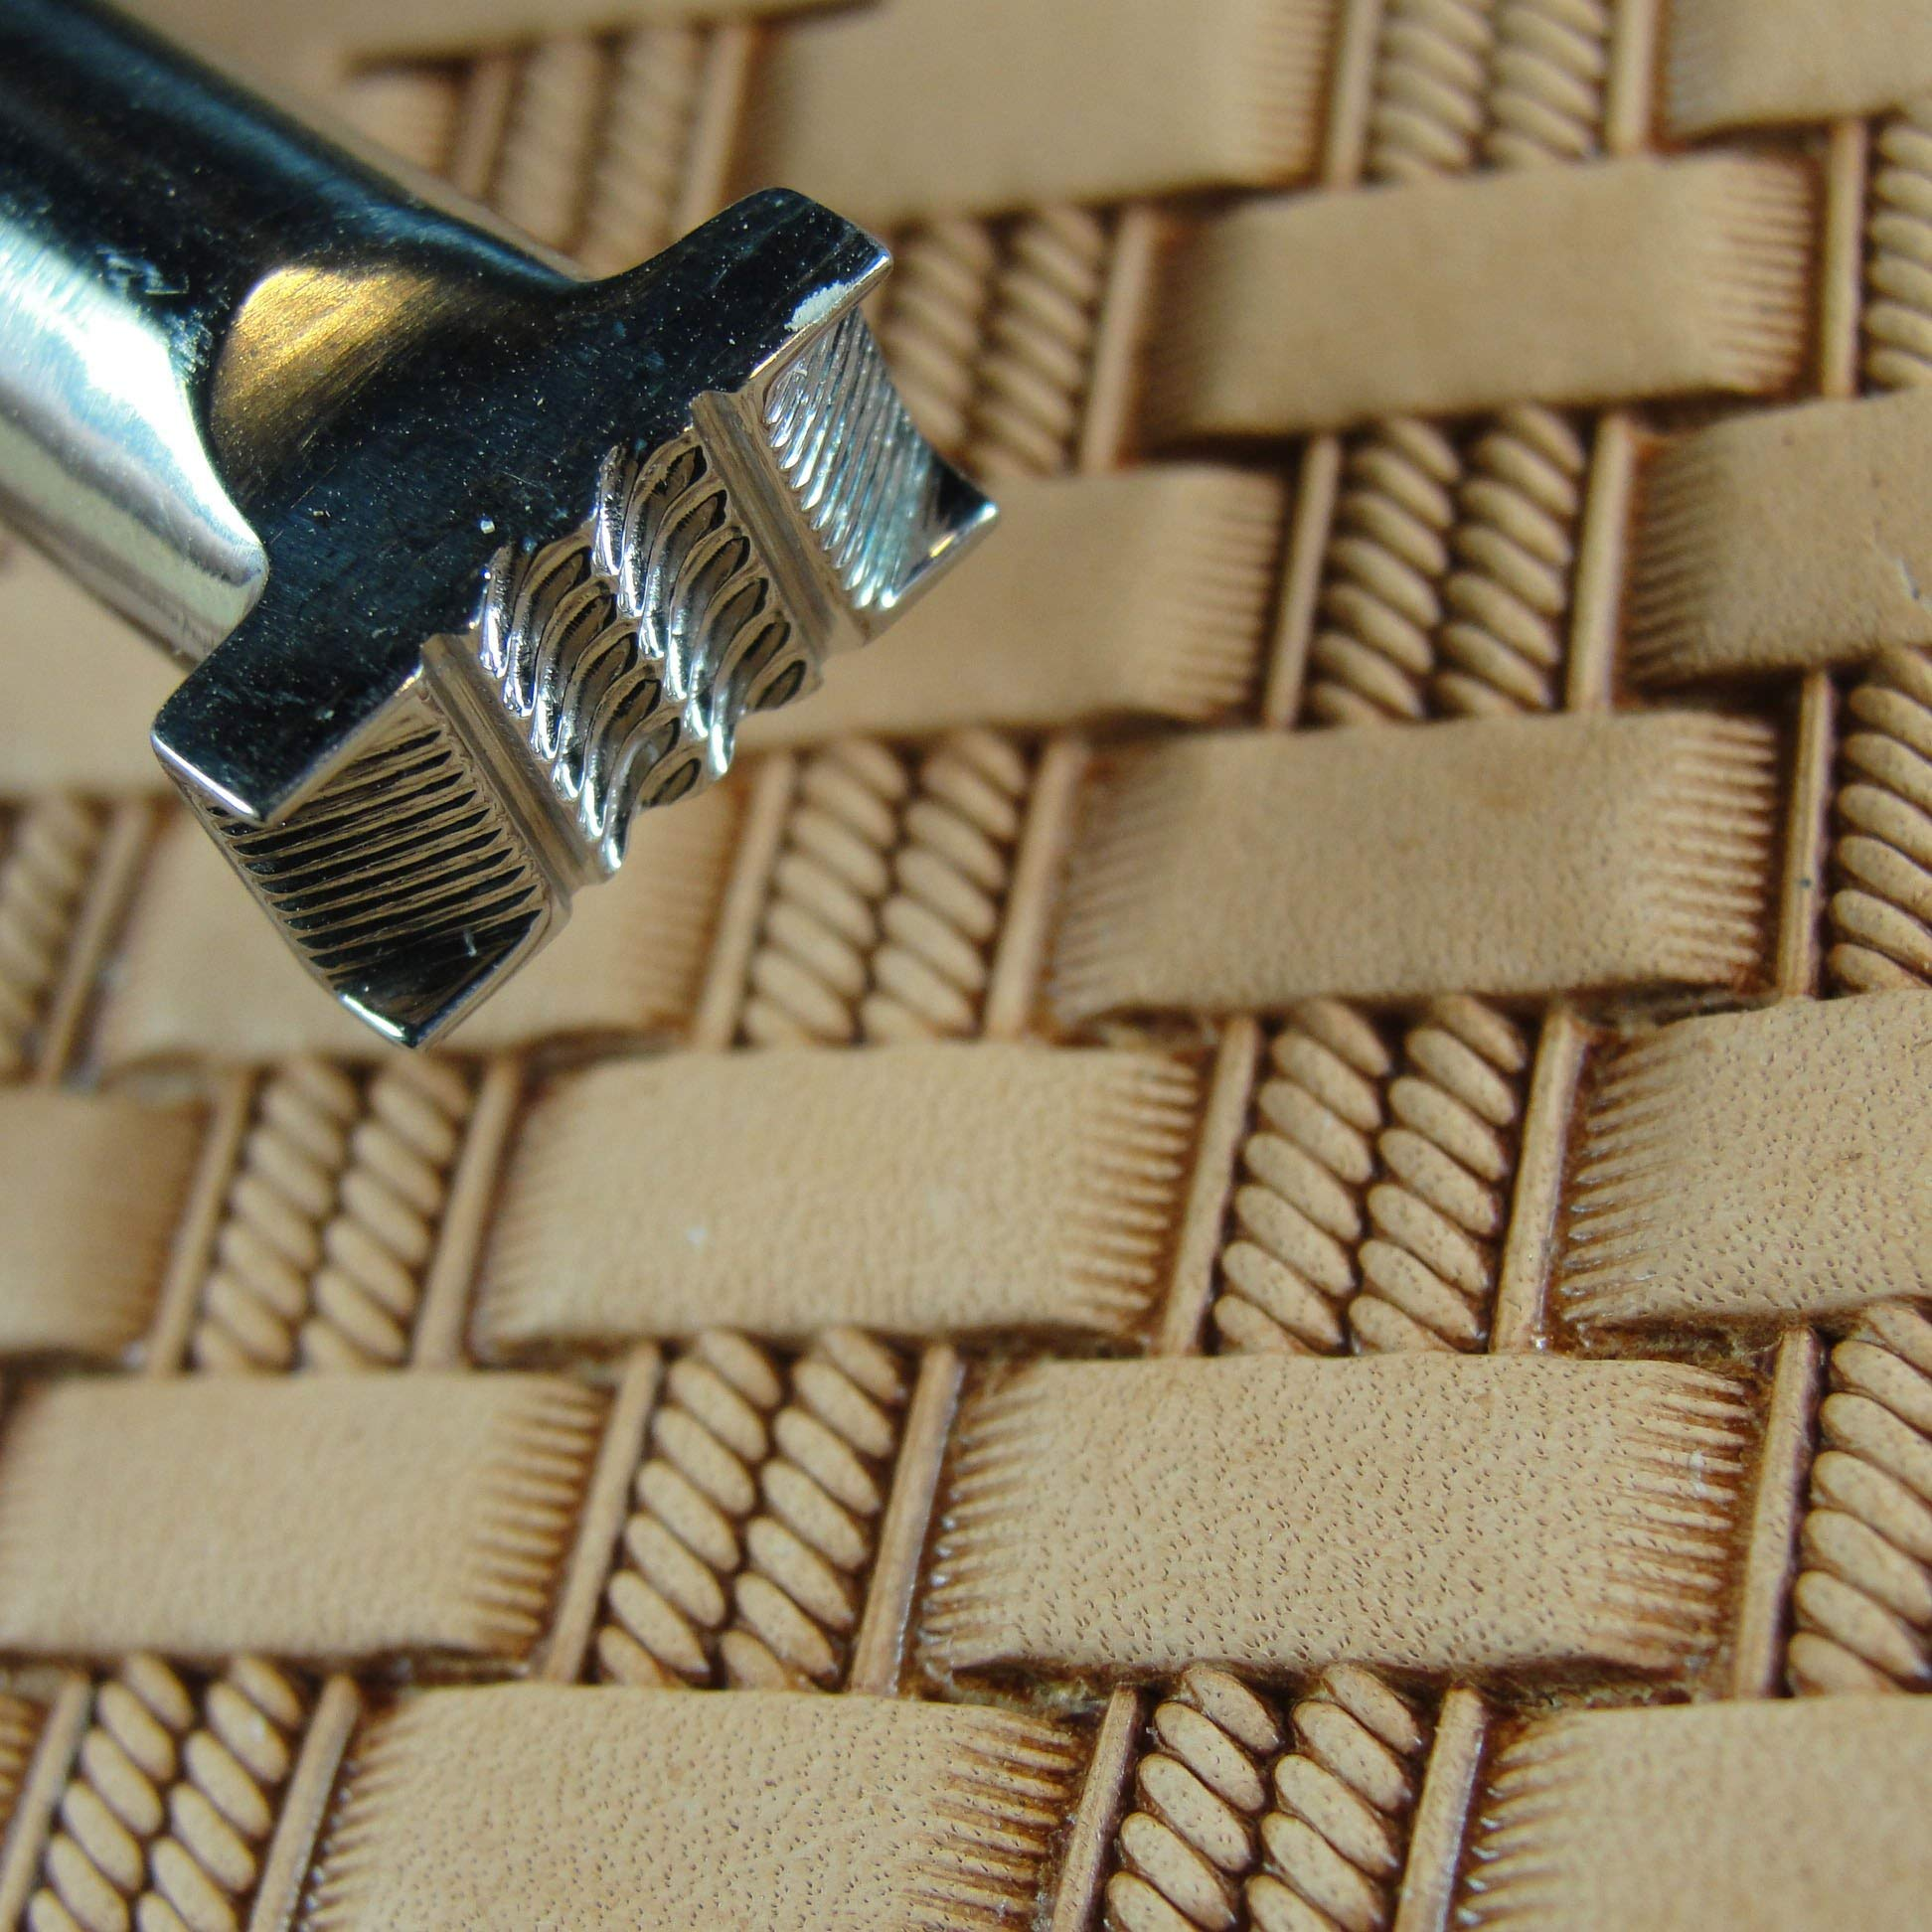 Stainless Steel Barry King - #3 Double Rope Basket Weave Stamp (Leather Tool) by Pro Leather Carvers